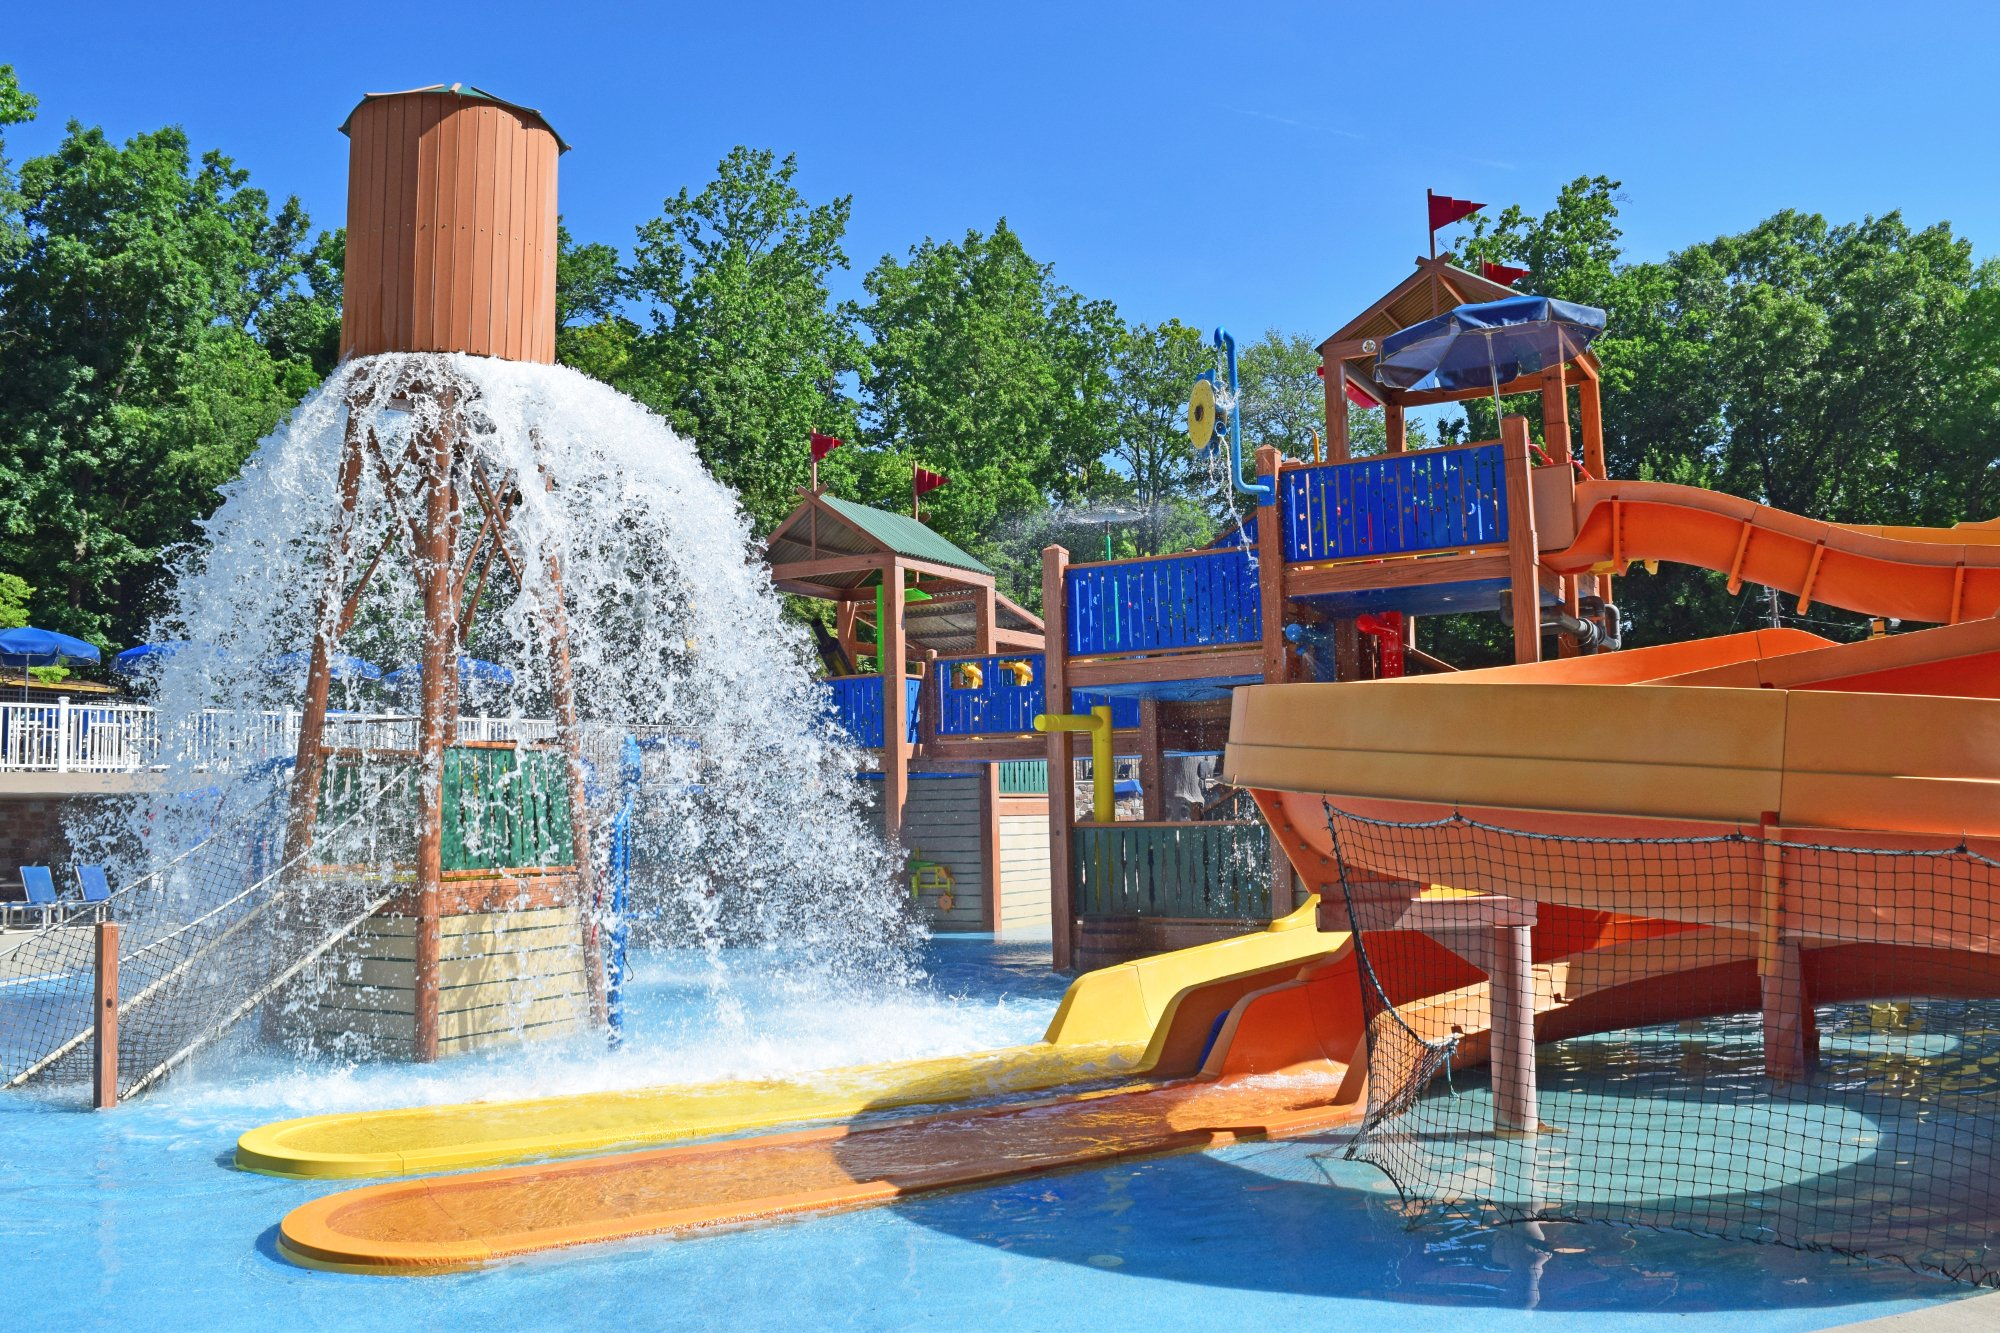 Yogi Bear's Jellystone Park Camp-Resort in Quarryville